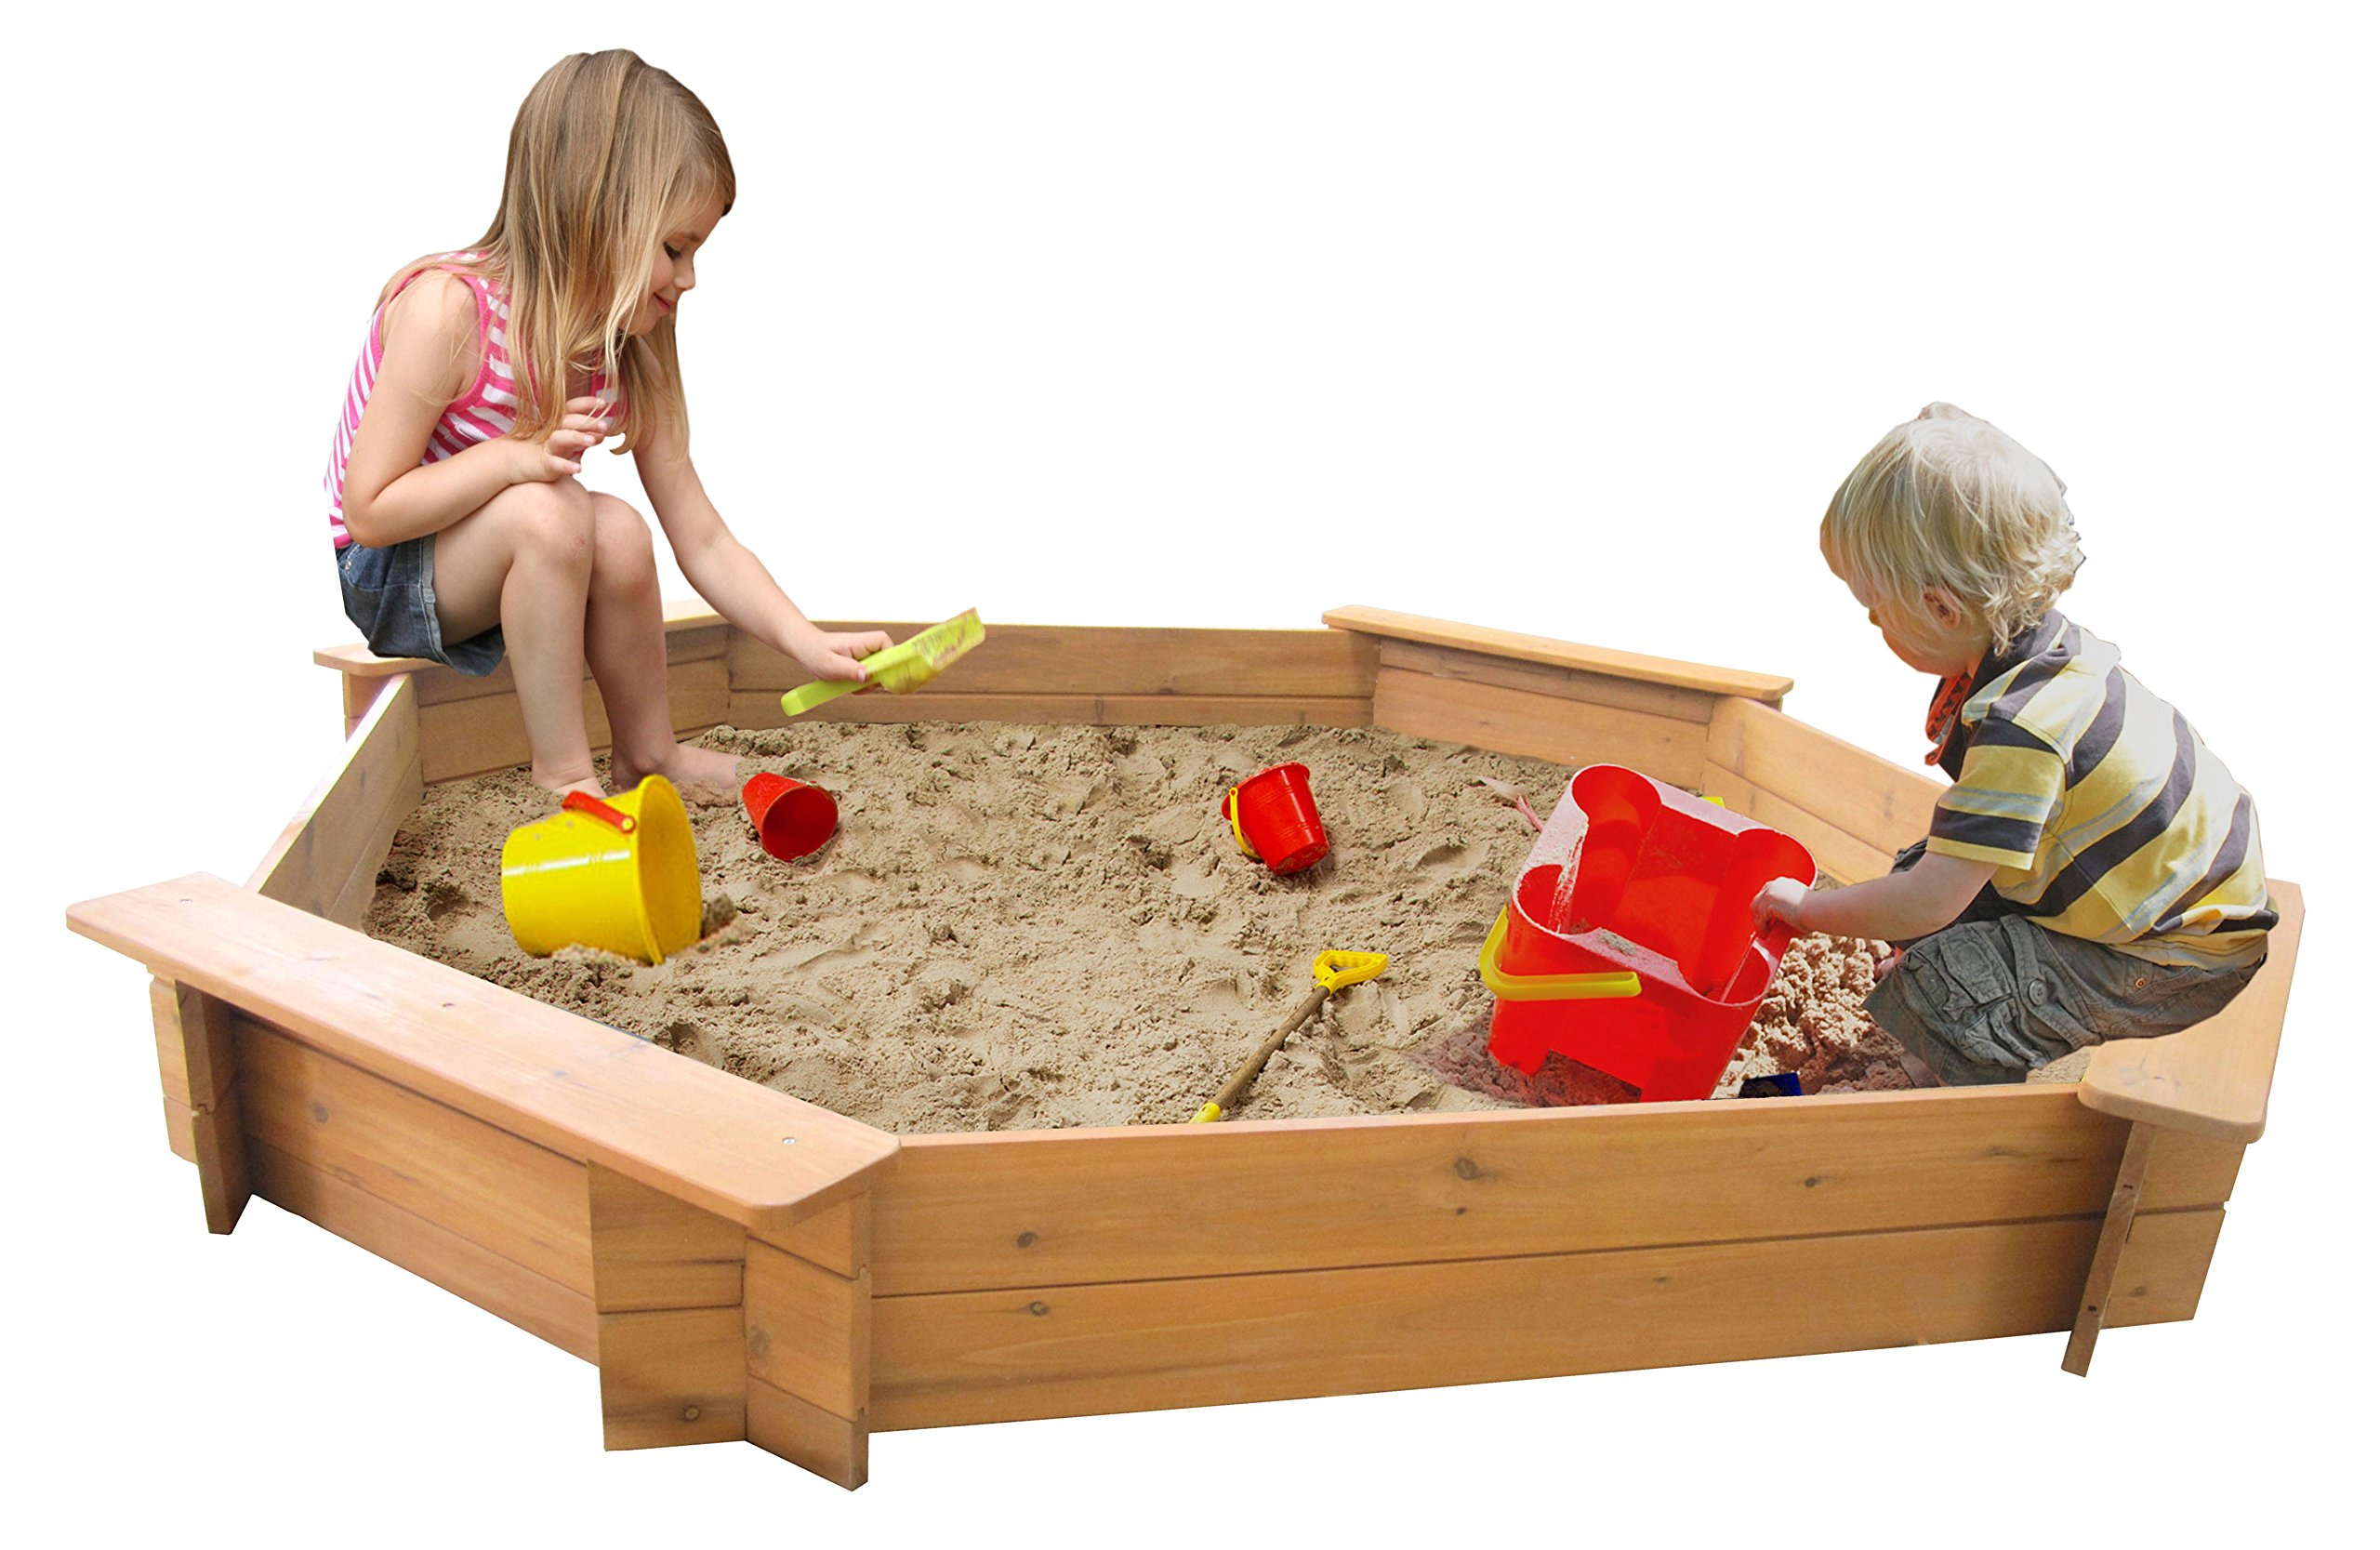 Big Game Hunters 6410 Giant 1.8 Metre Octagonal Wooden Sandpit 20 Centimetres Deep Complete with Underlay and Rain Cover, Natural Wood